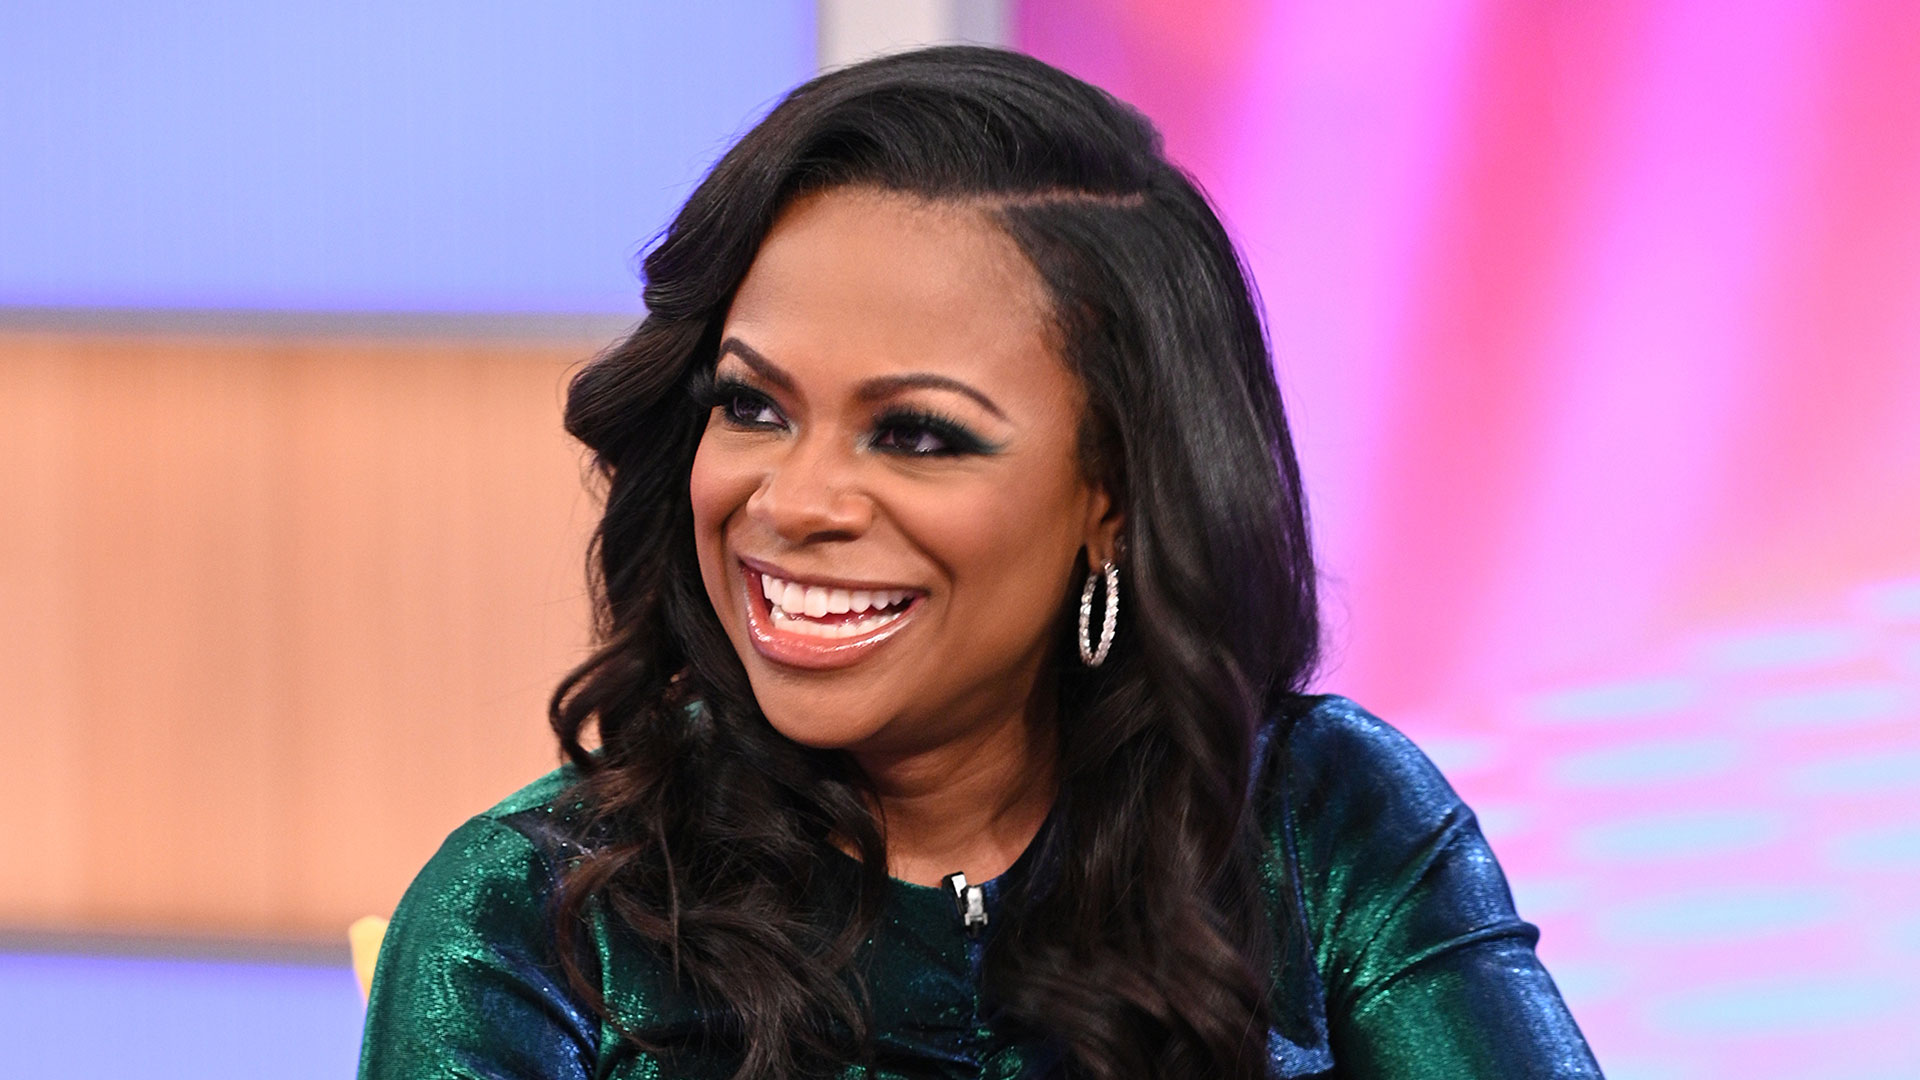 Kandi Burruss Wishes Her Lady Fans A Happy International Women's Day